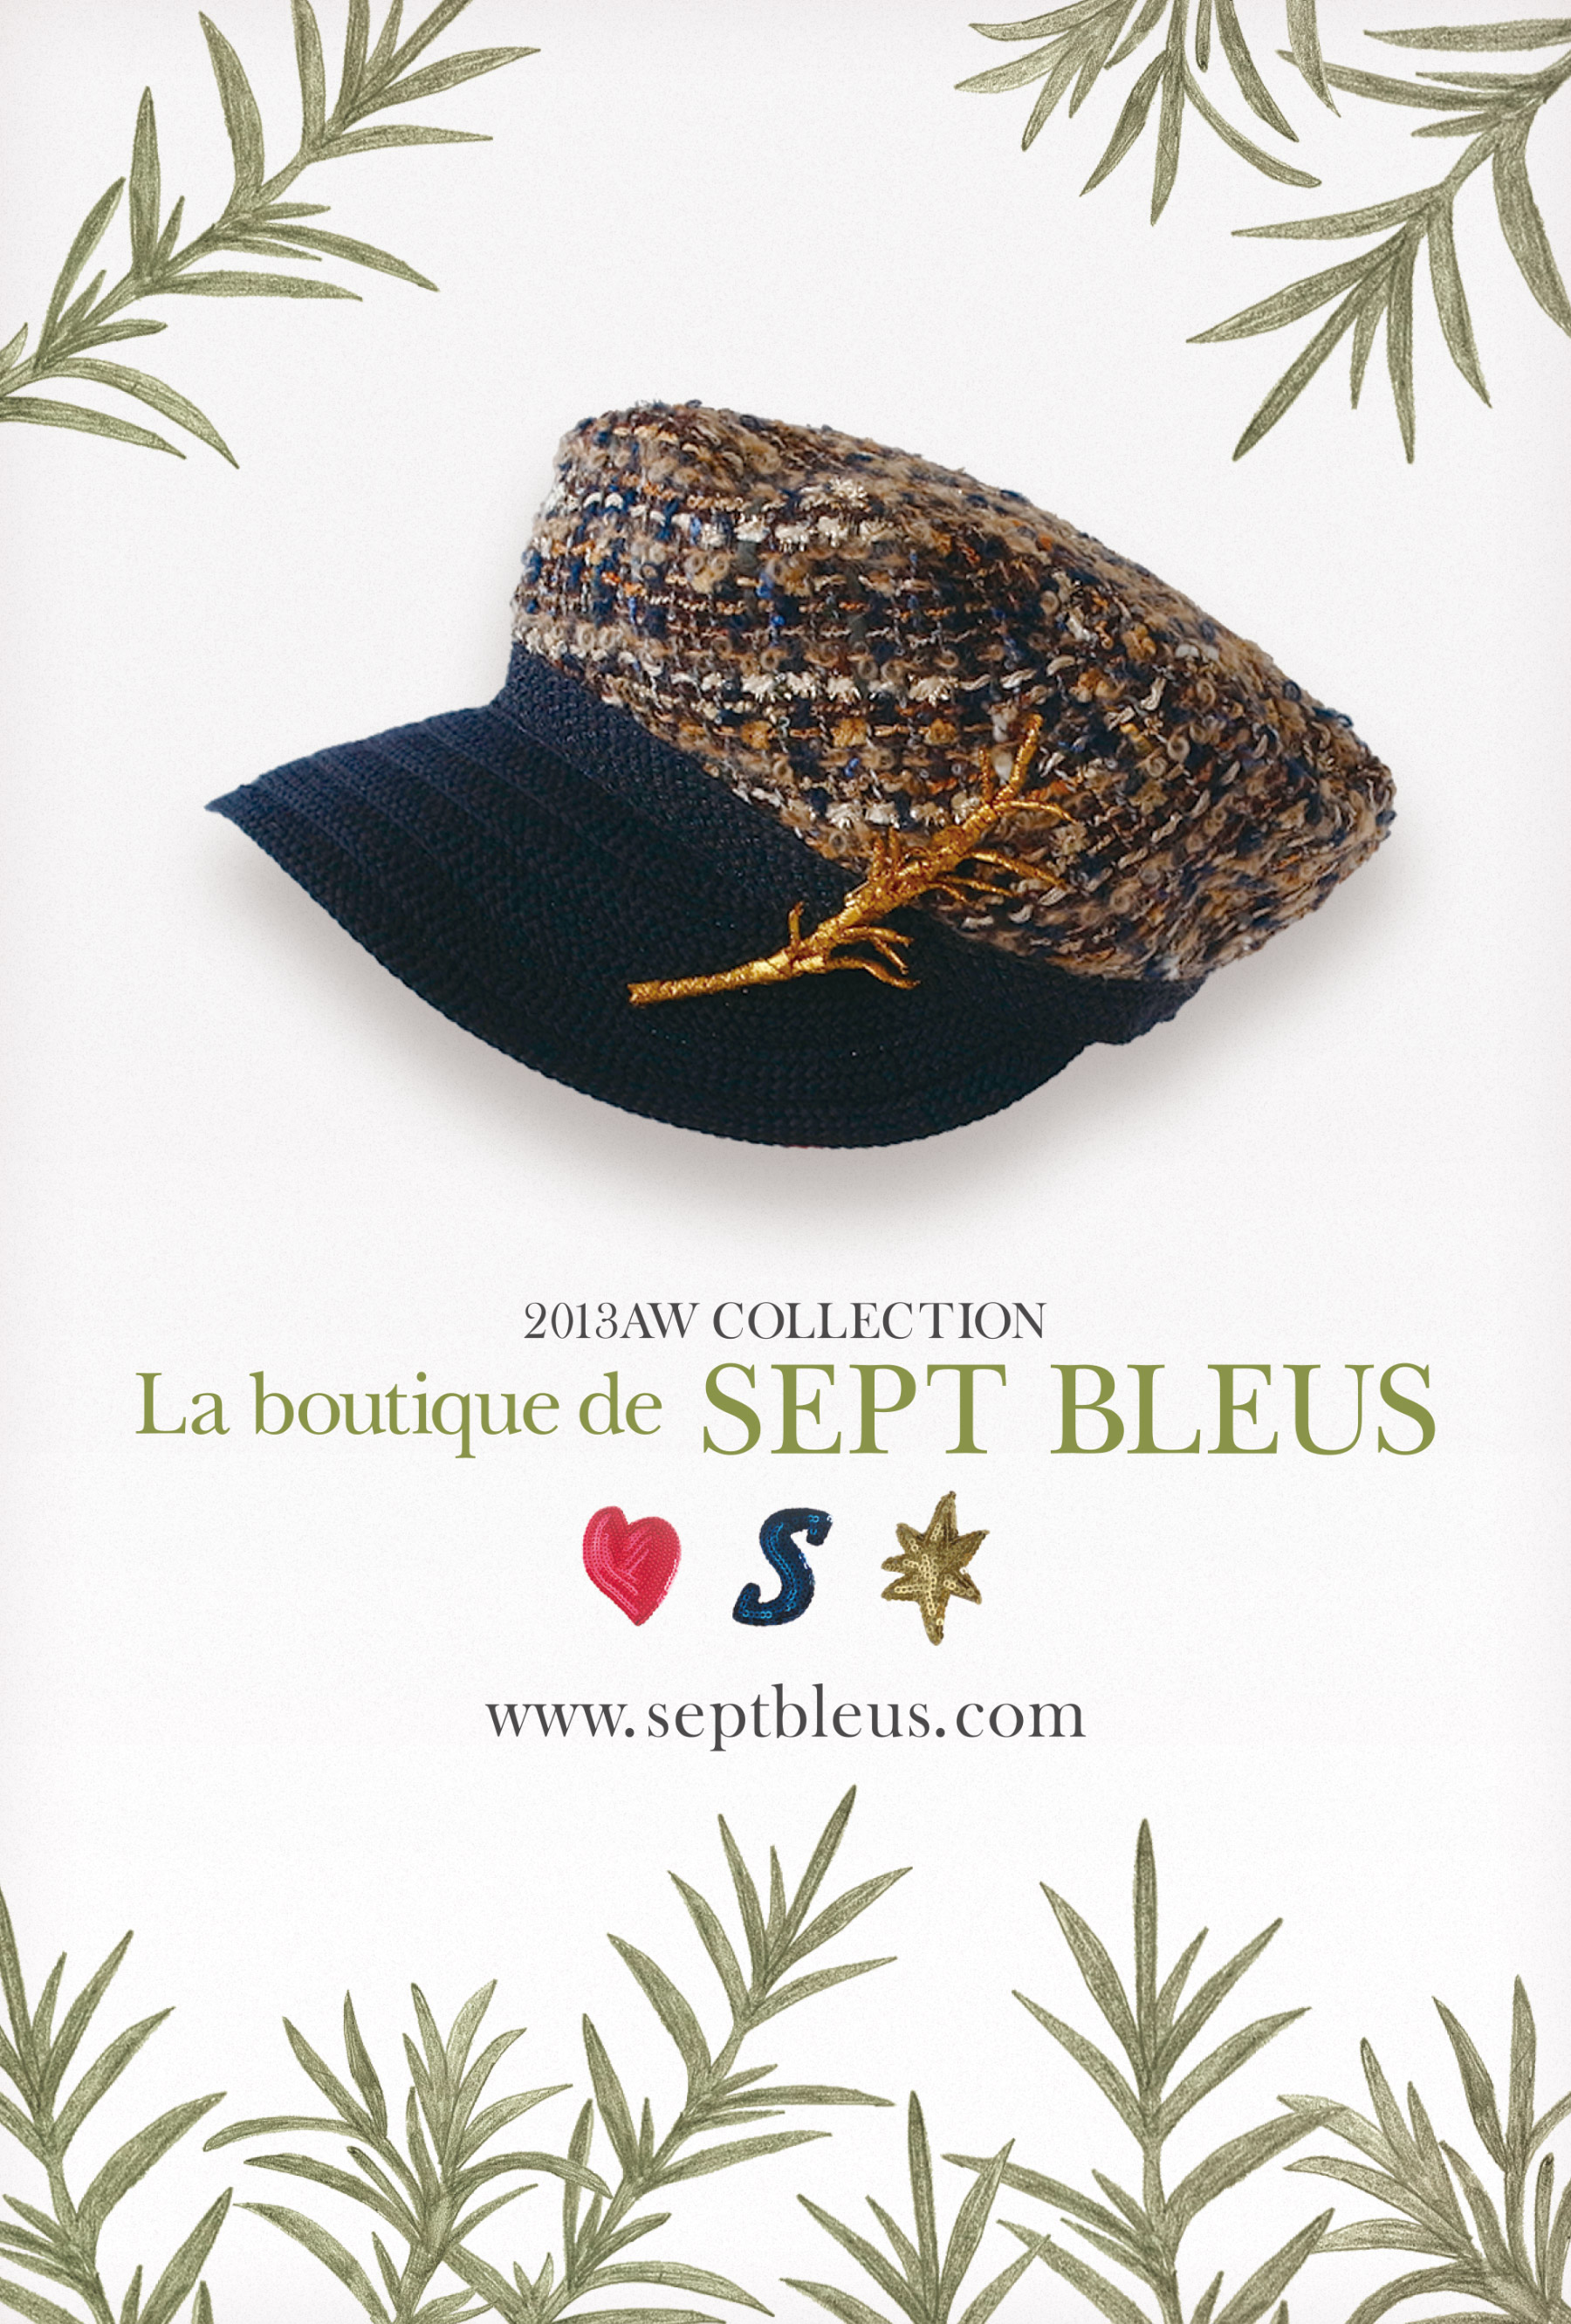 septbleus2013_aw